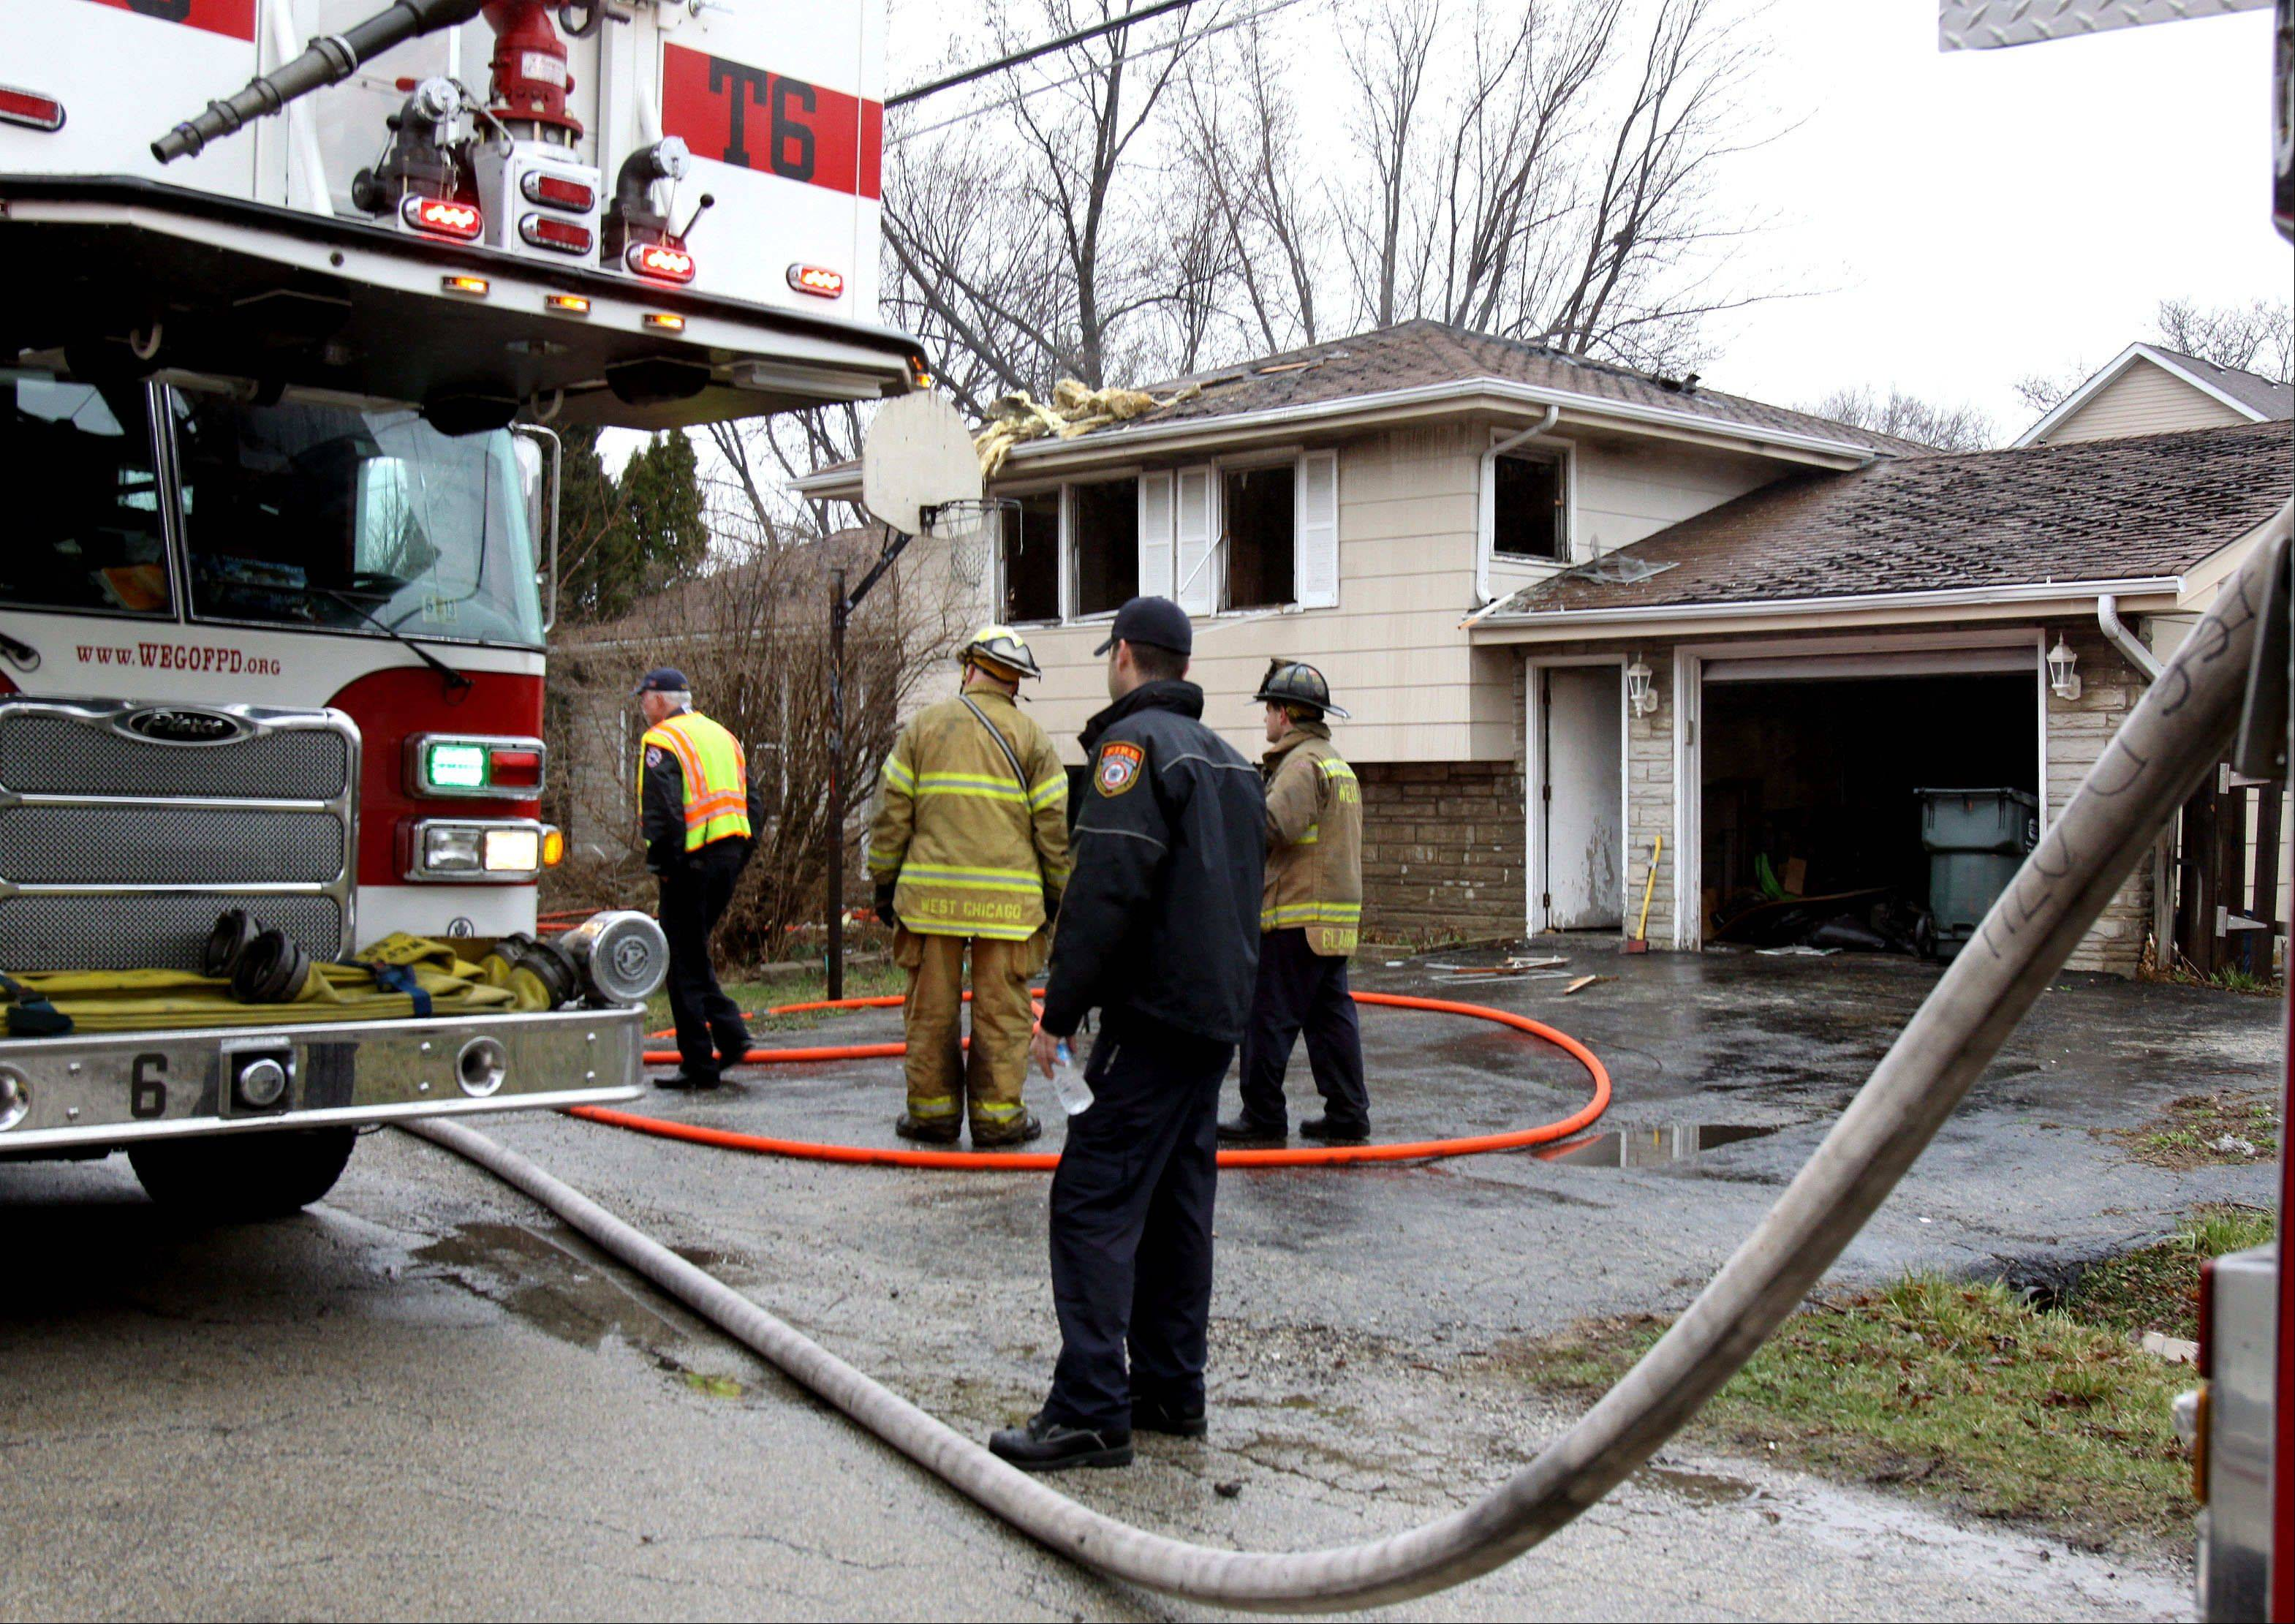 Wheaton firefighters clean up after a house fire Thursday morning on Armbrust Avenue.